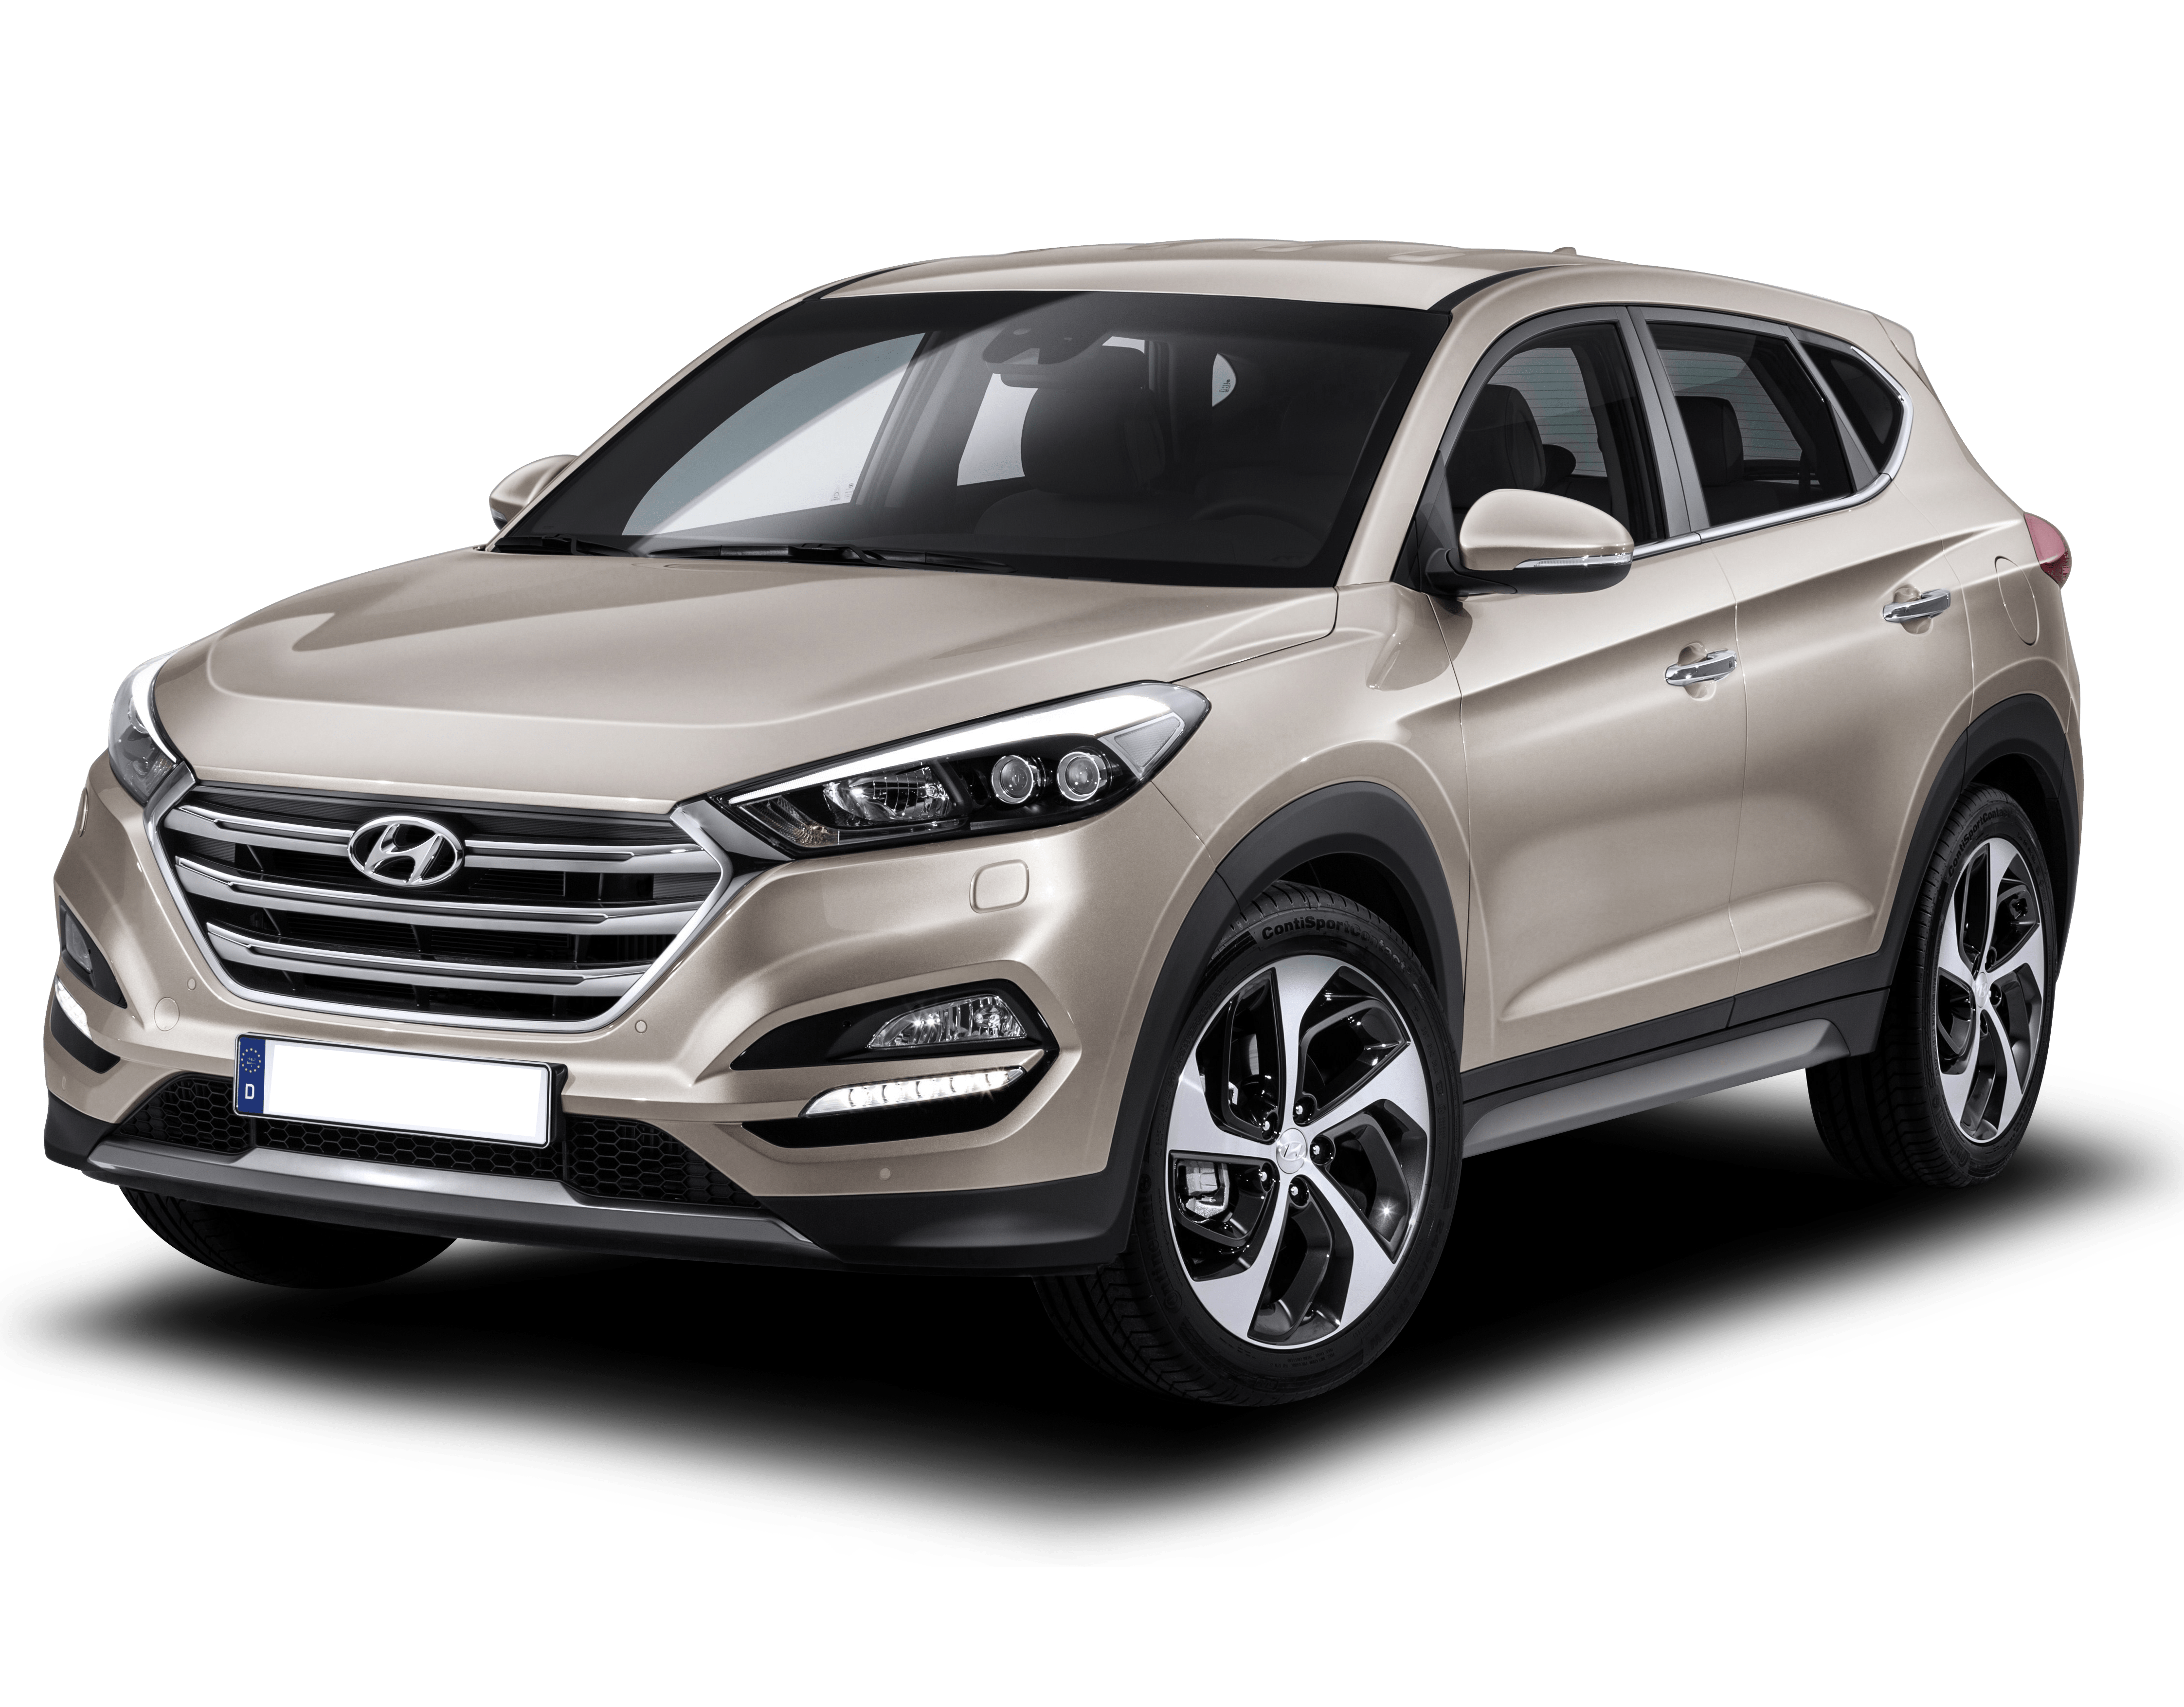 packs tucson hp n and but is turbo pipes no has sport body quite punch a hyundai kit news quad